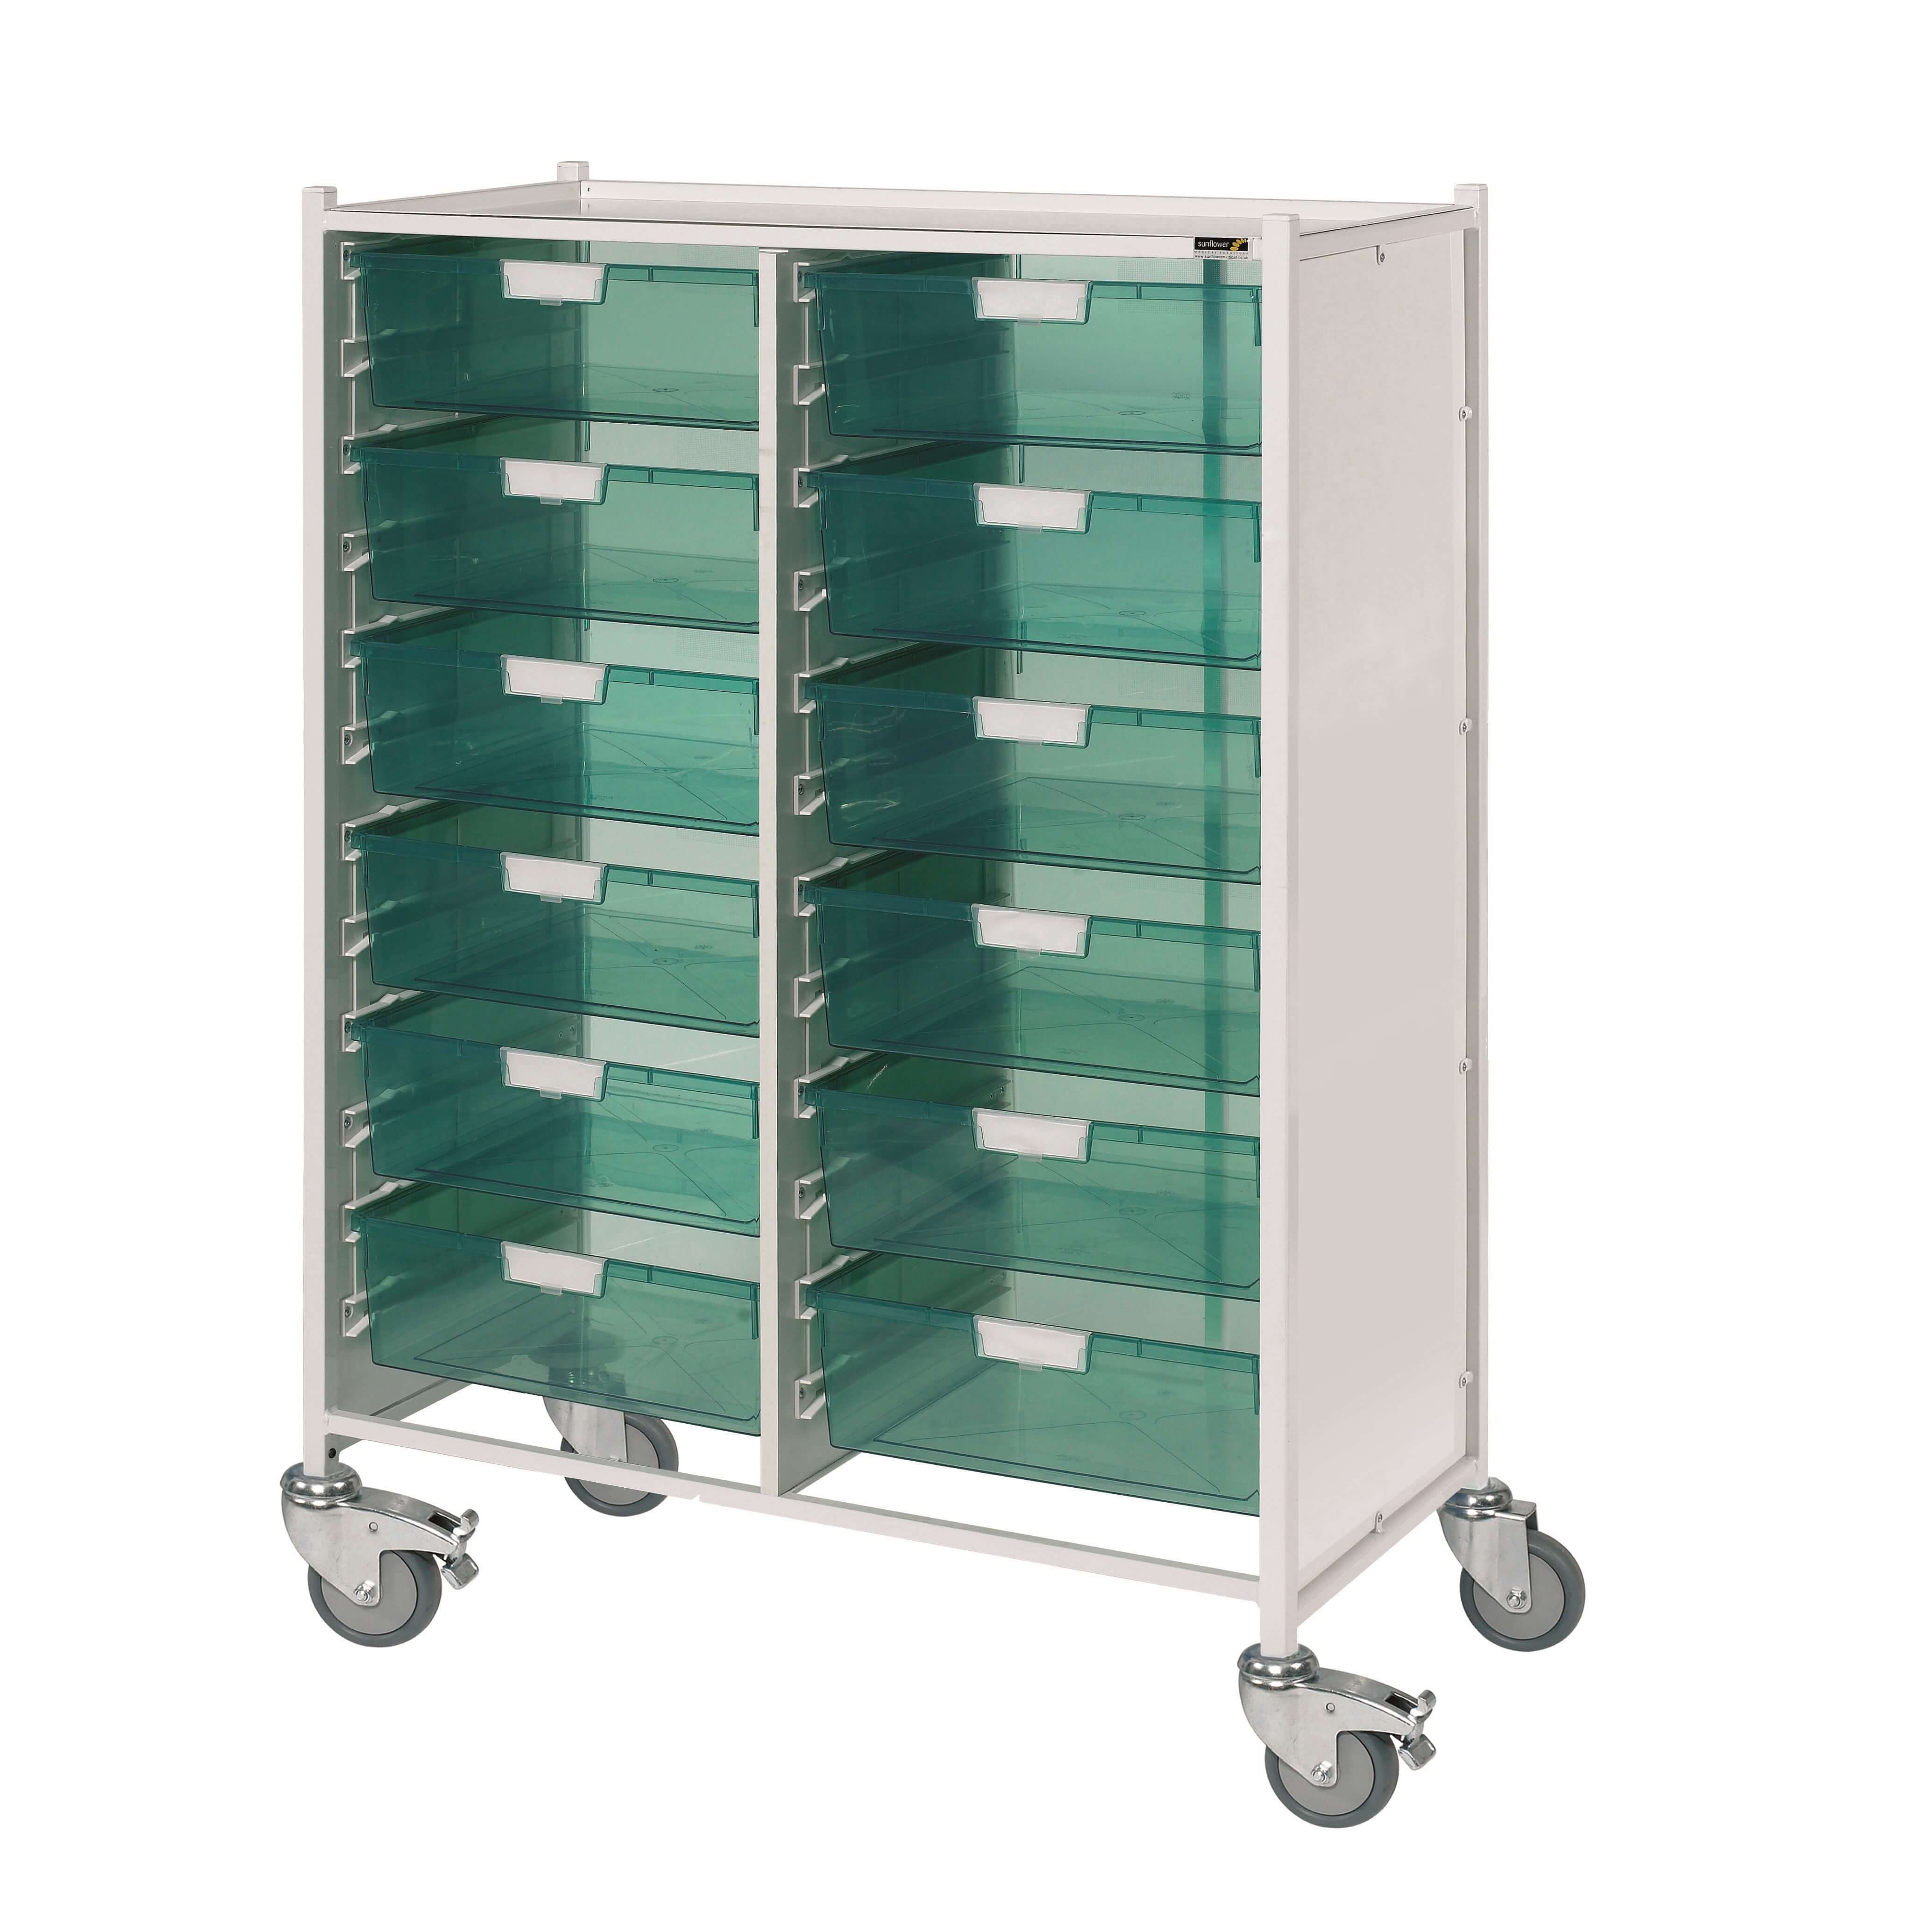 VISTA 240 Trolley - 12 Double Green Trays